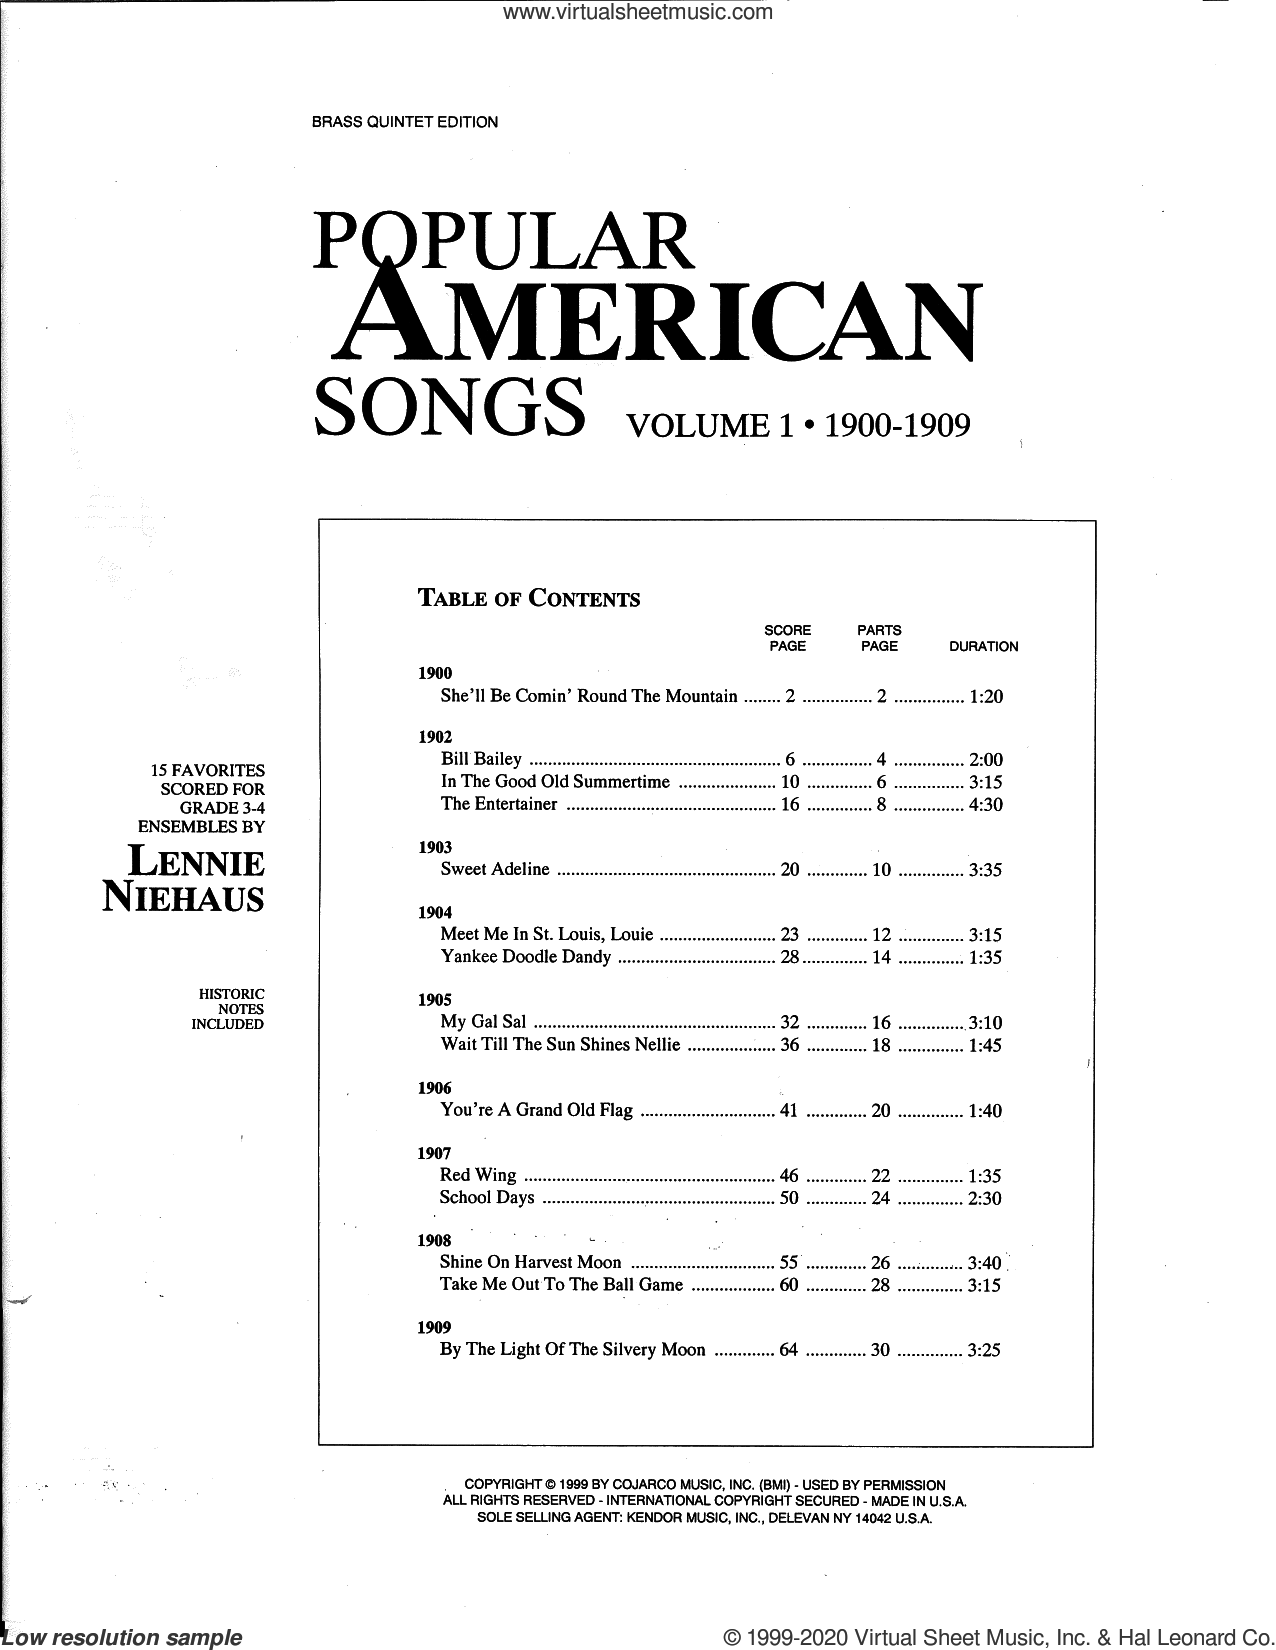 Popular American Songs, Volume 1 - 2nd Trumpet sheet music for brass quintet by Lennie Niehaus and Miscellaneous, intermediate skill level